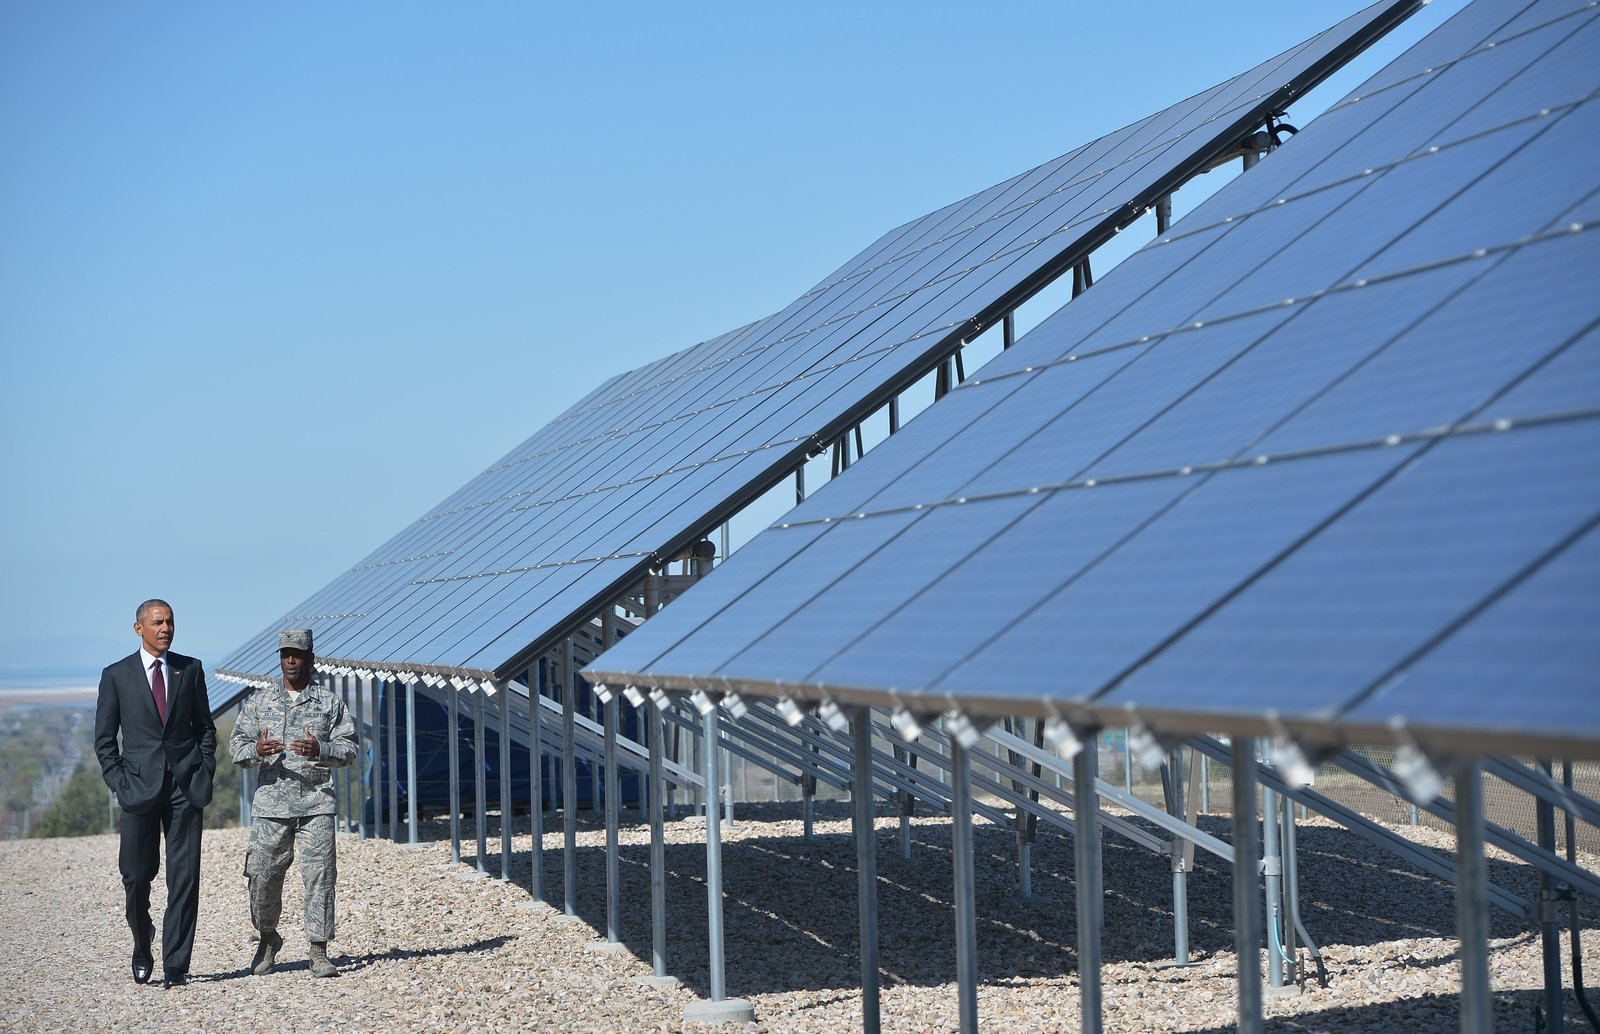 President Obama at a solar installation at Hill Air Force Base in Utah